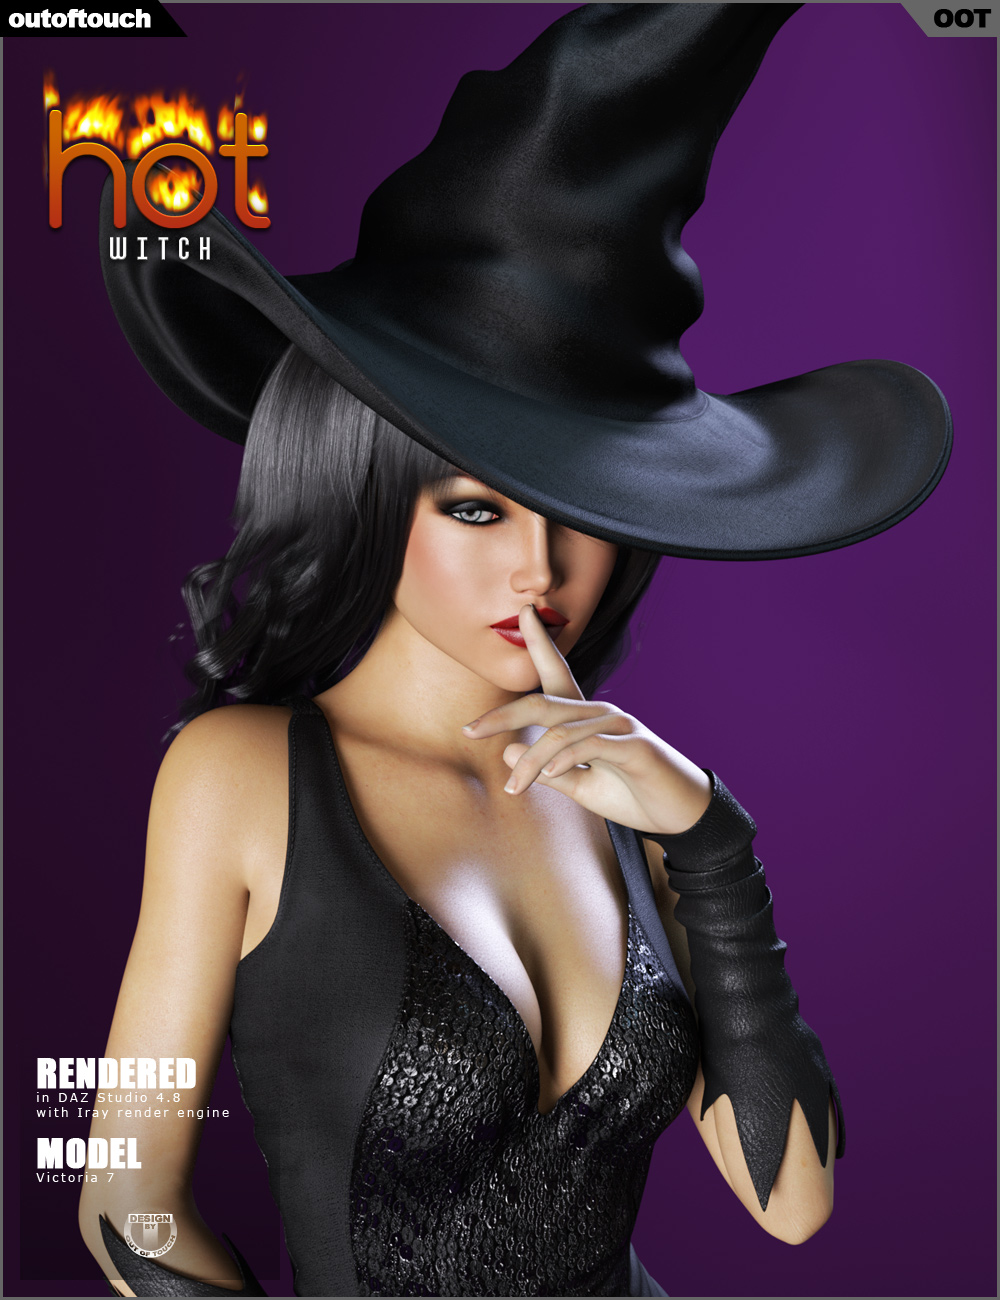 Remarkable, hot sexy witches something